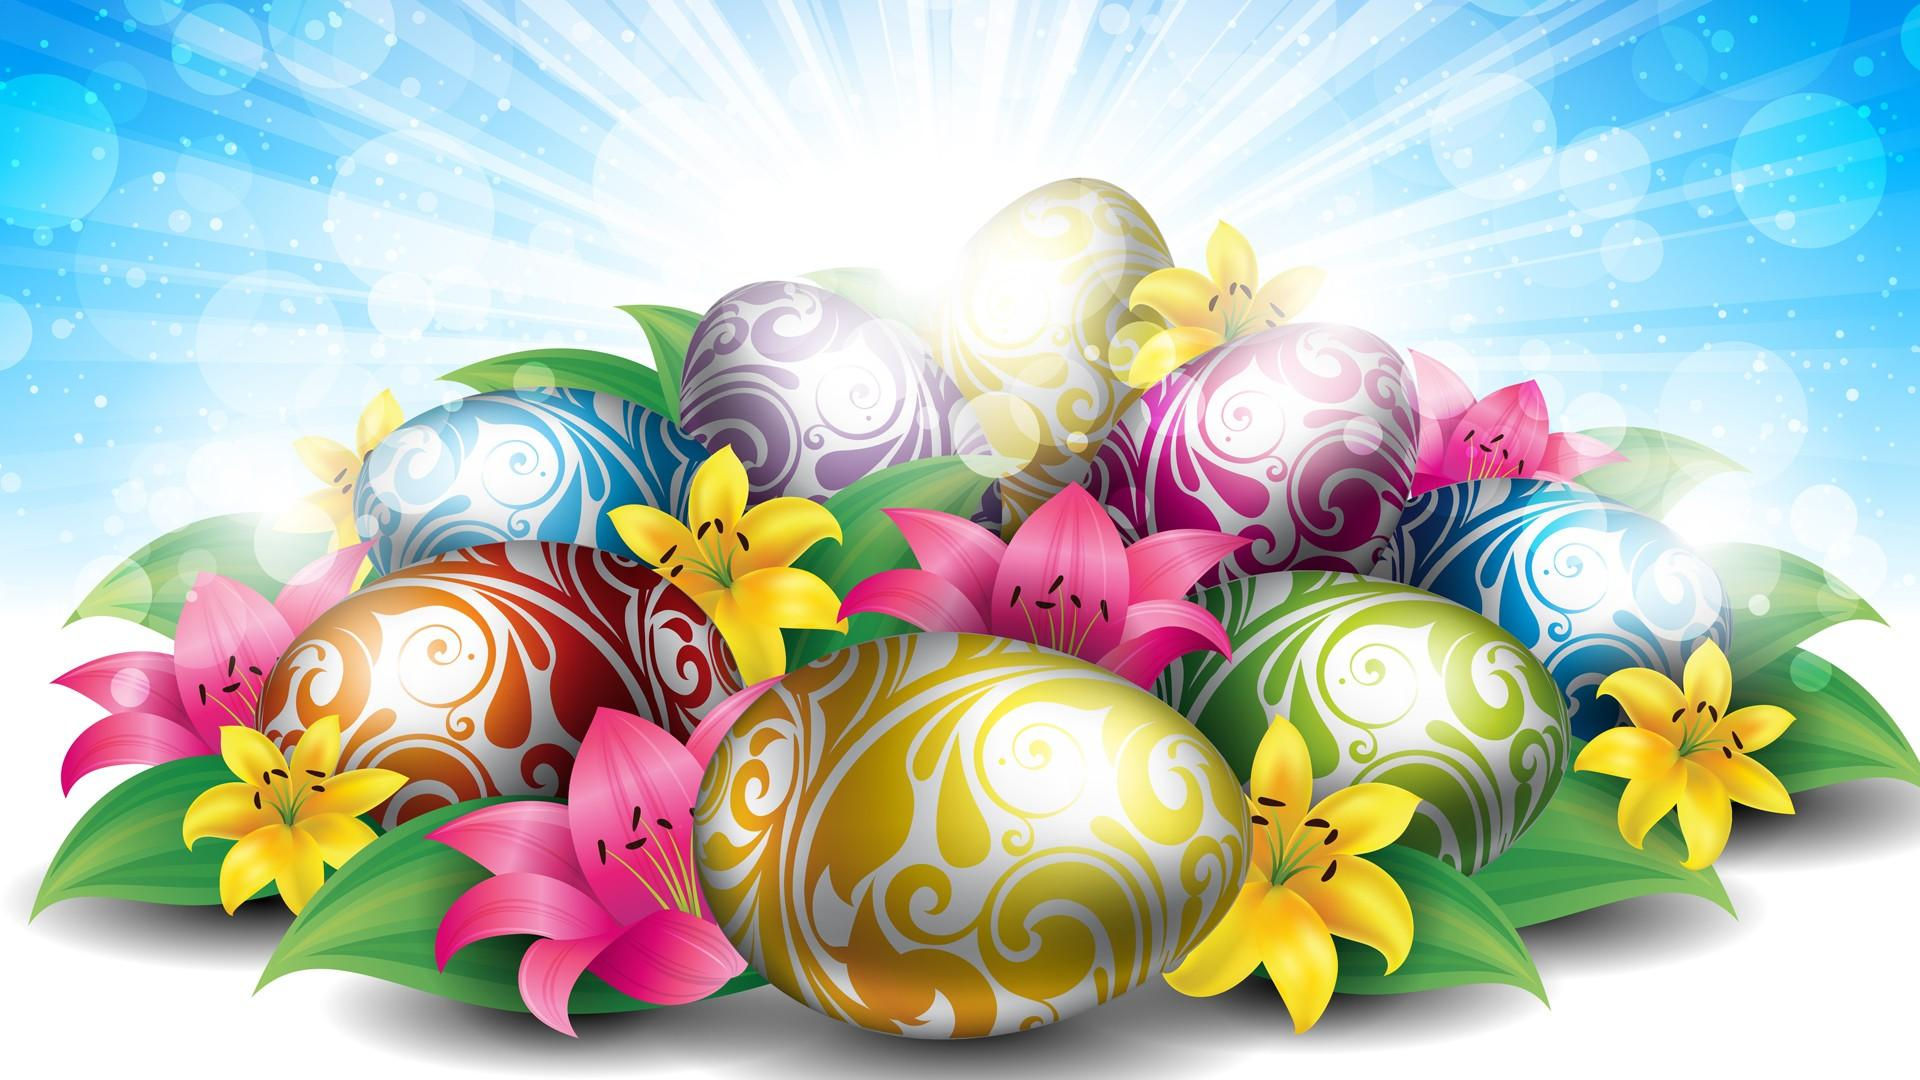 lilies_eggs_for_easter